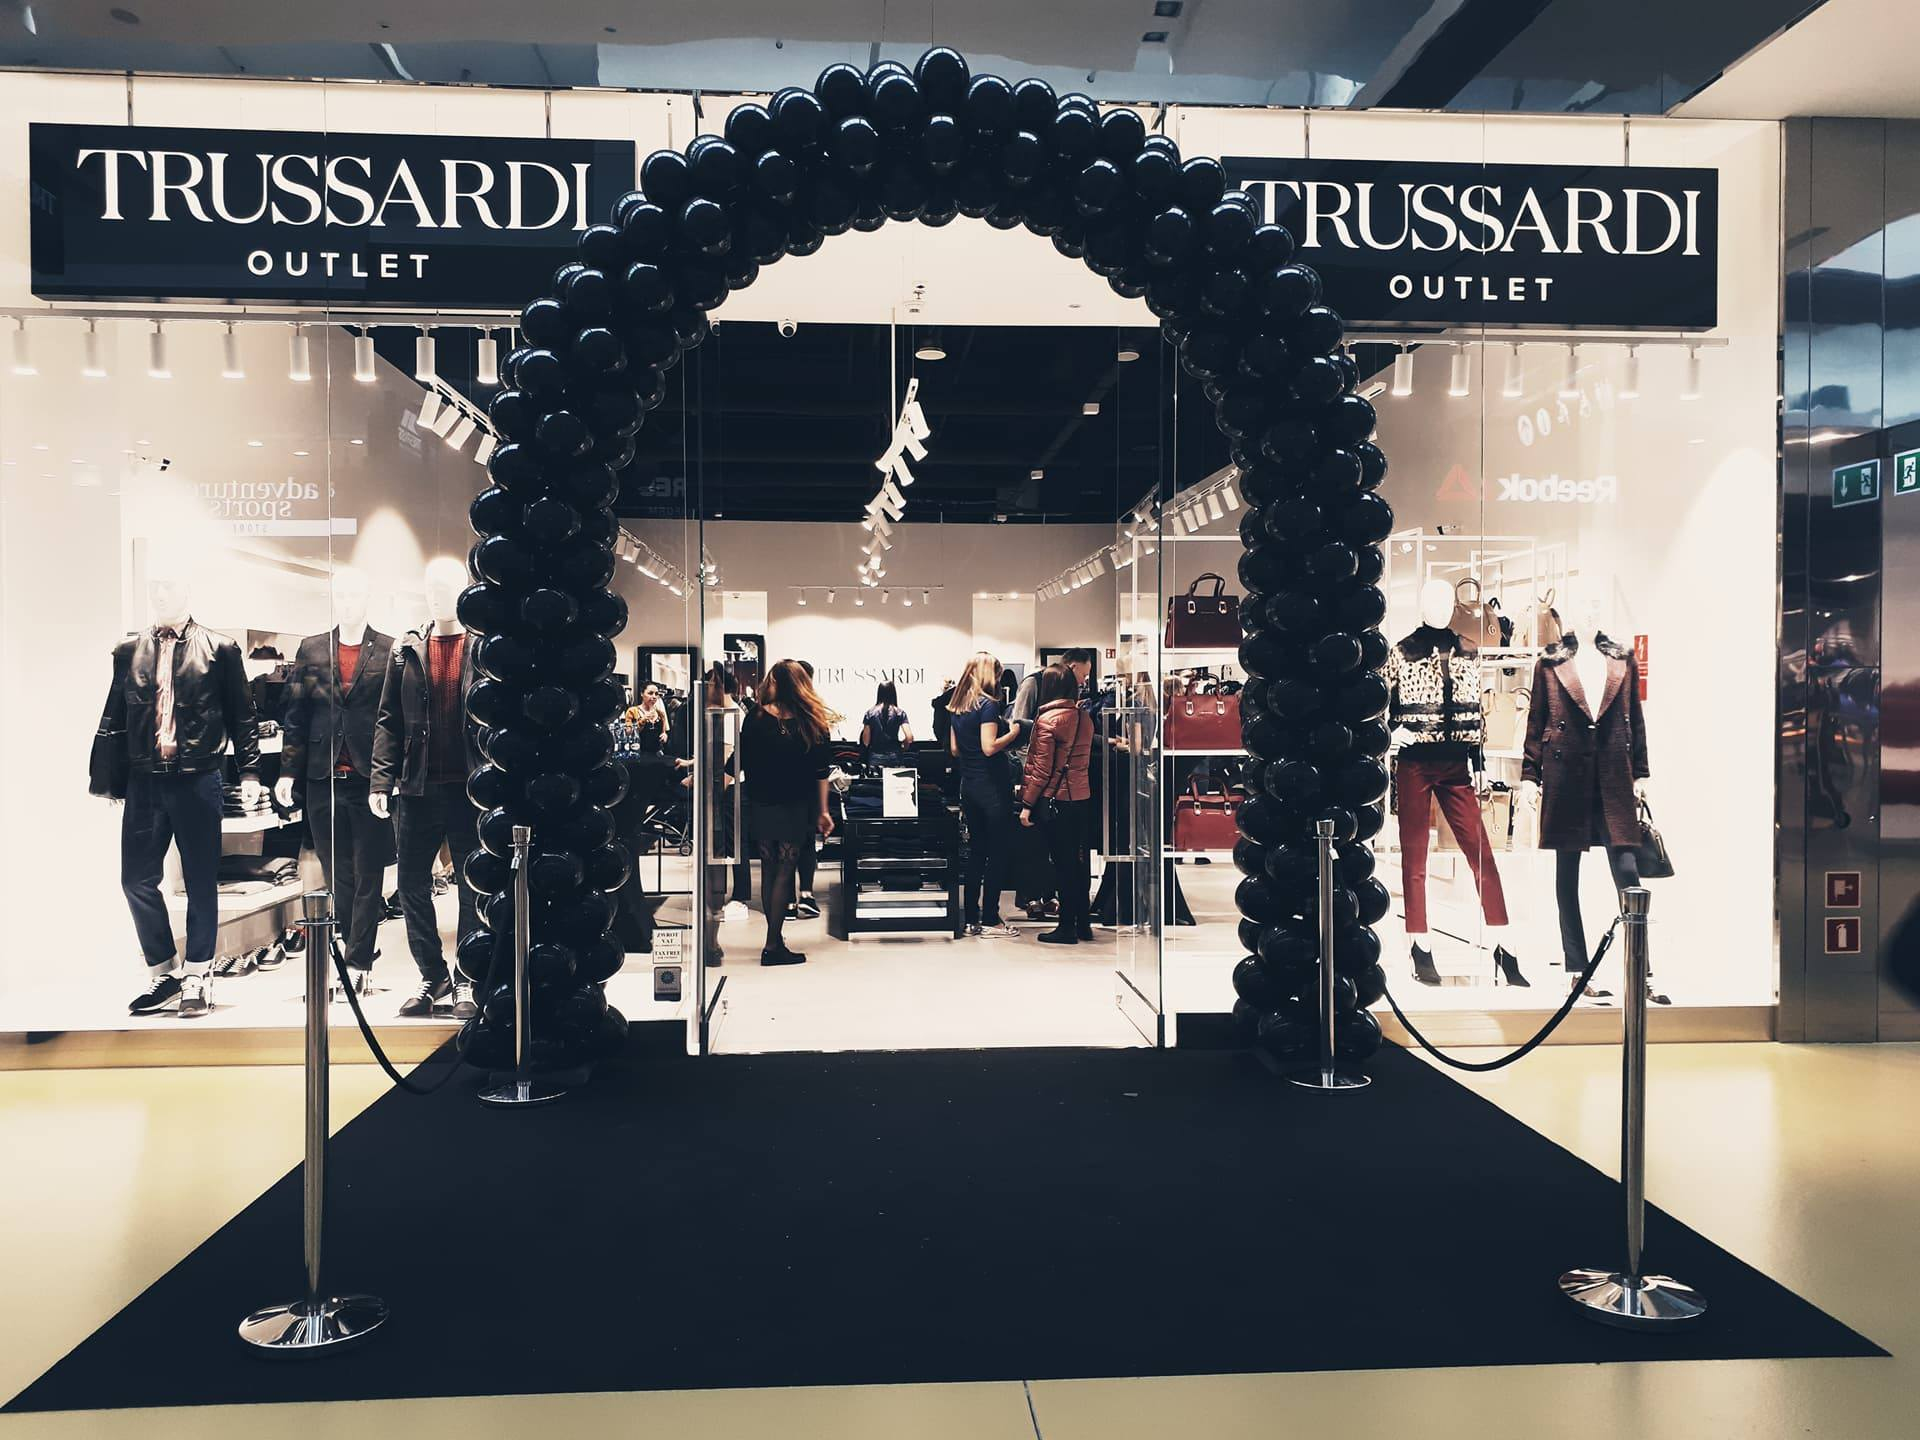 Trussardi Outlet